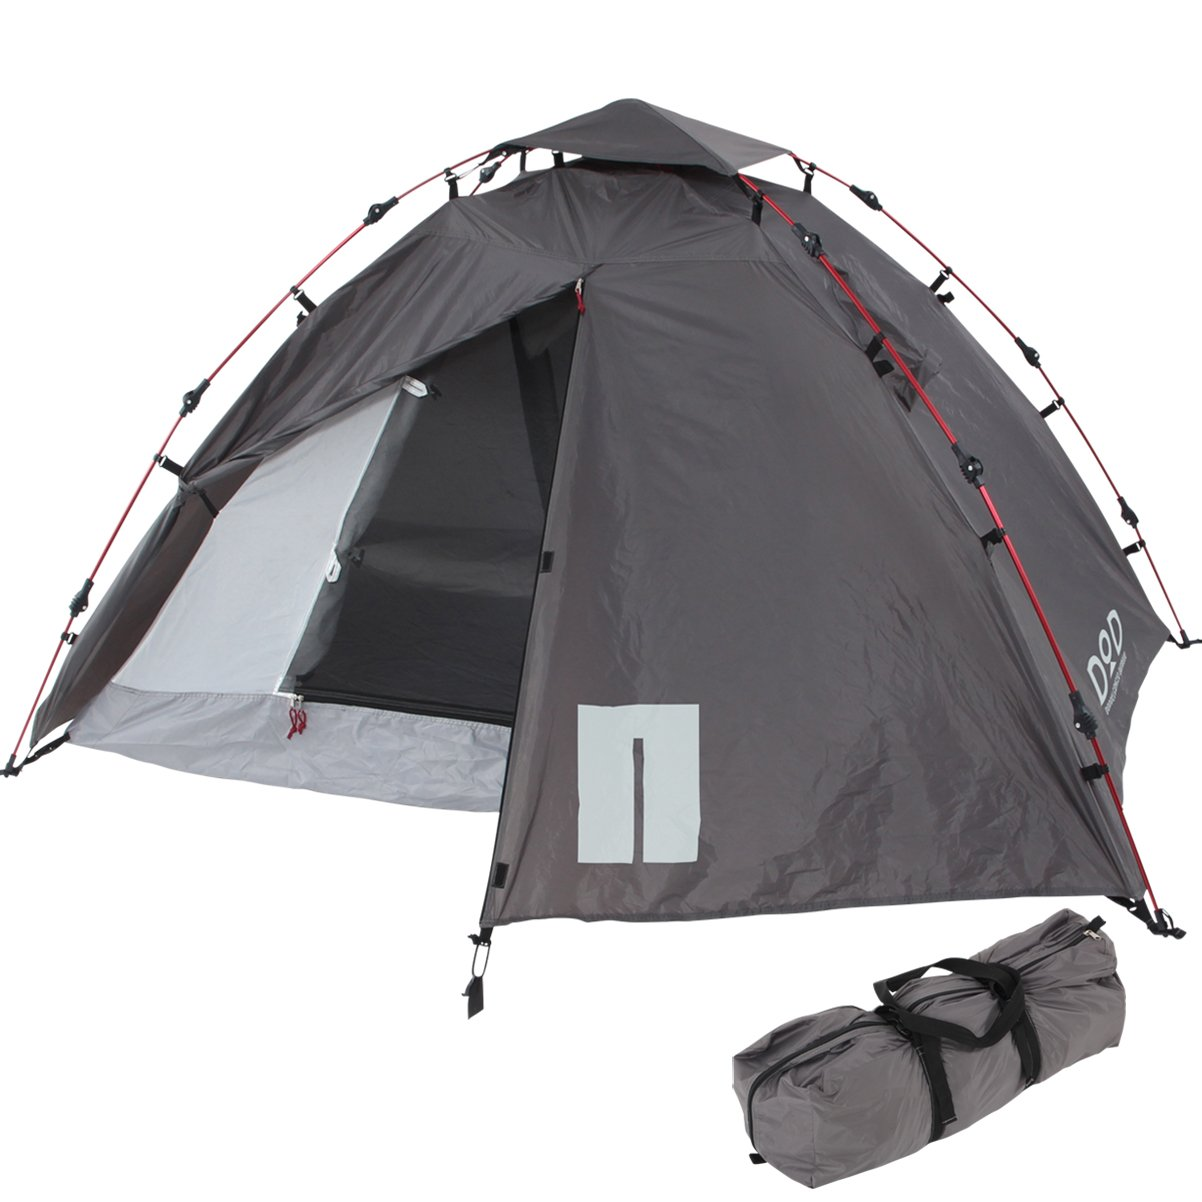 DOPPELGANGER OUTDOOR 2人用 ライダーズワンタッチテント T2-275